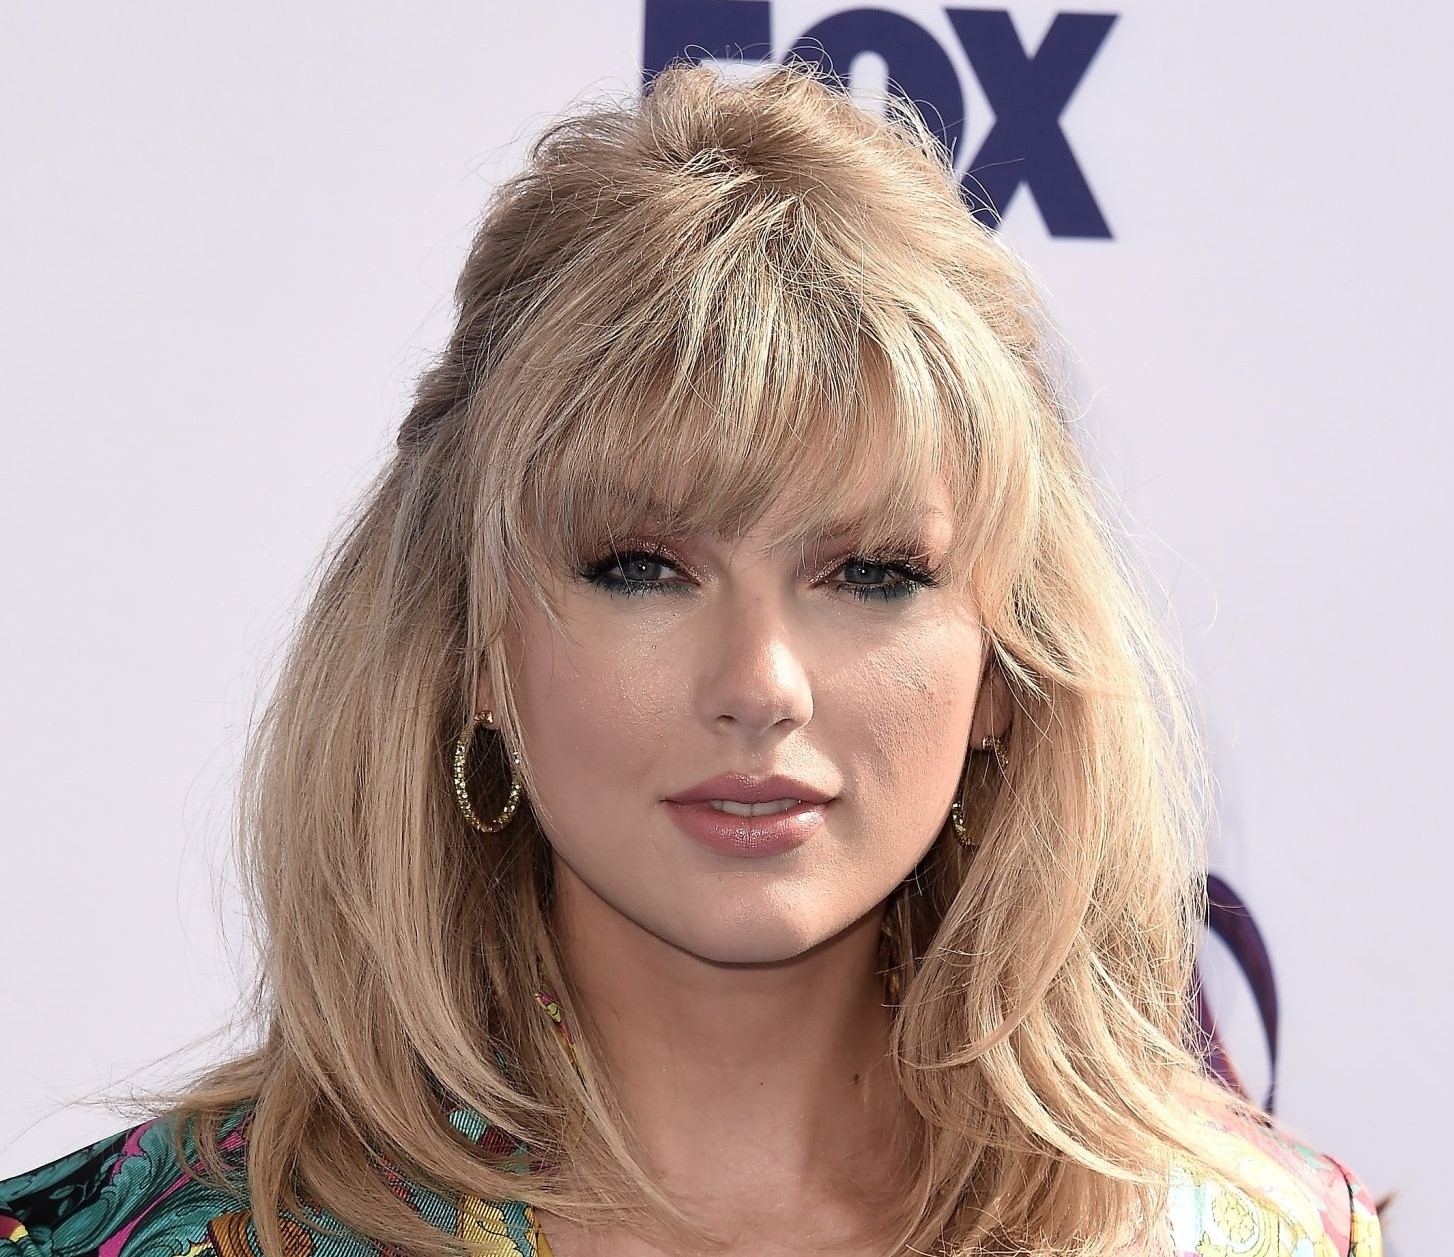 American singer Taylor Swift helped university student financially